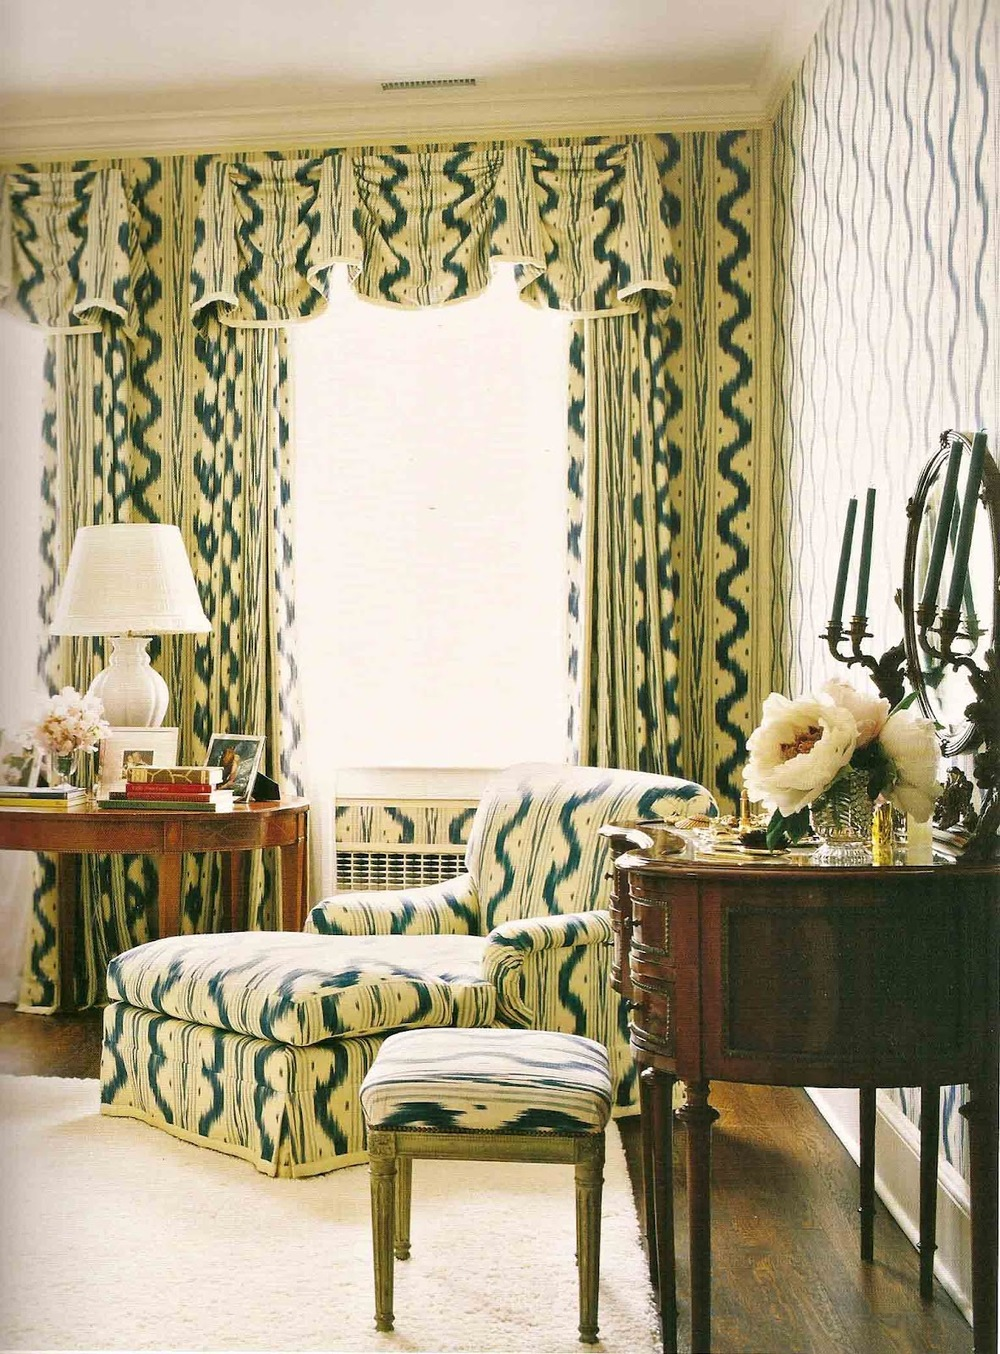 Pierre Frey Toile De Nantes Mark Hampton for Aerin Lauder .jpg